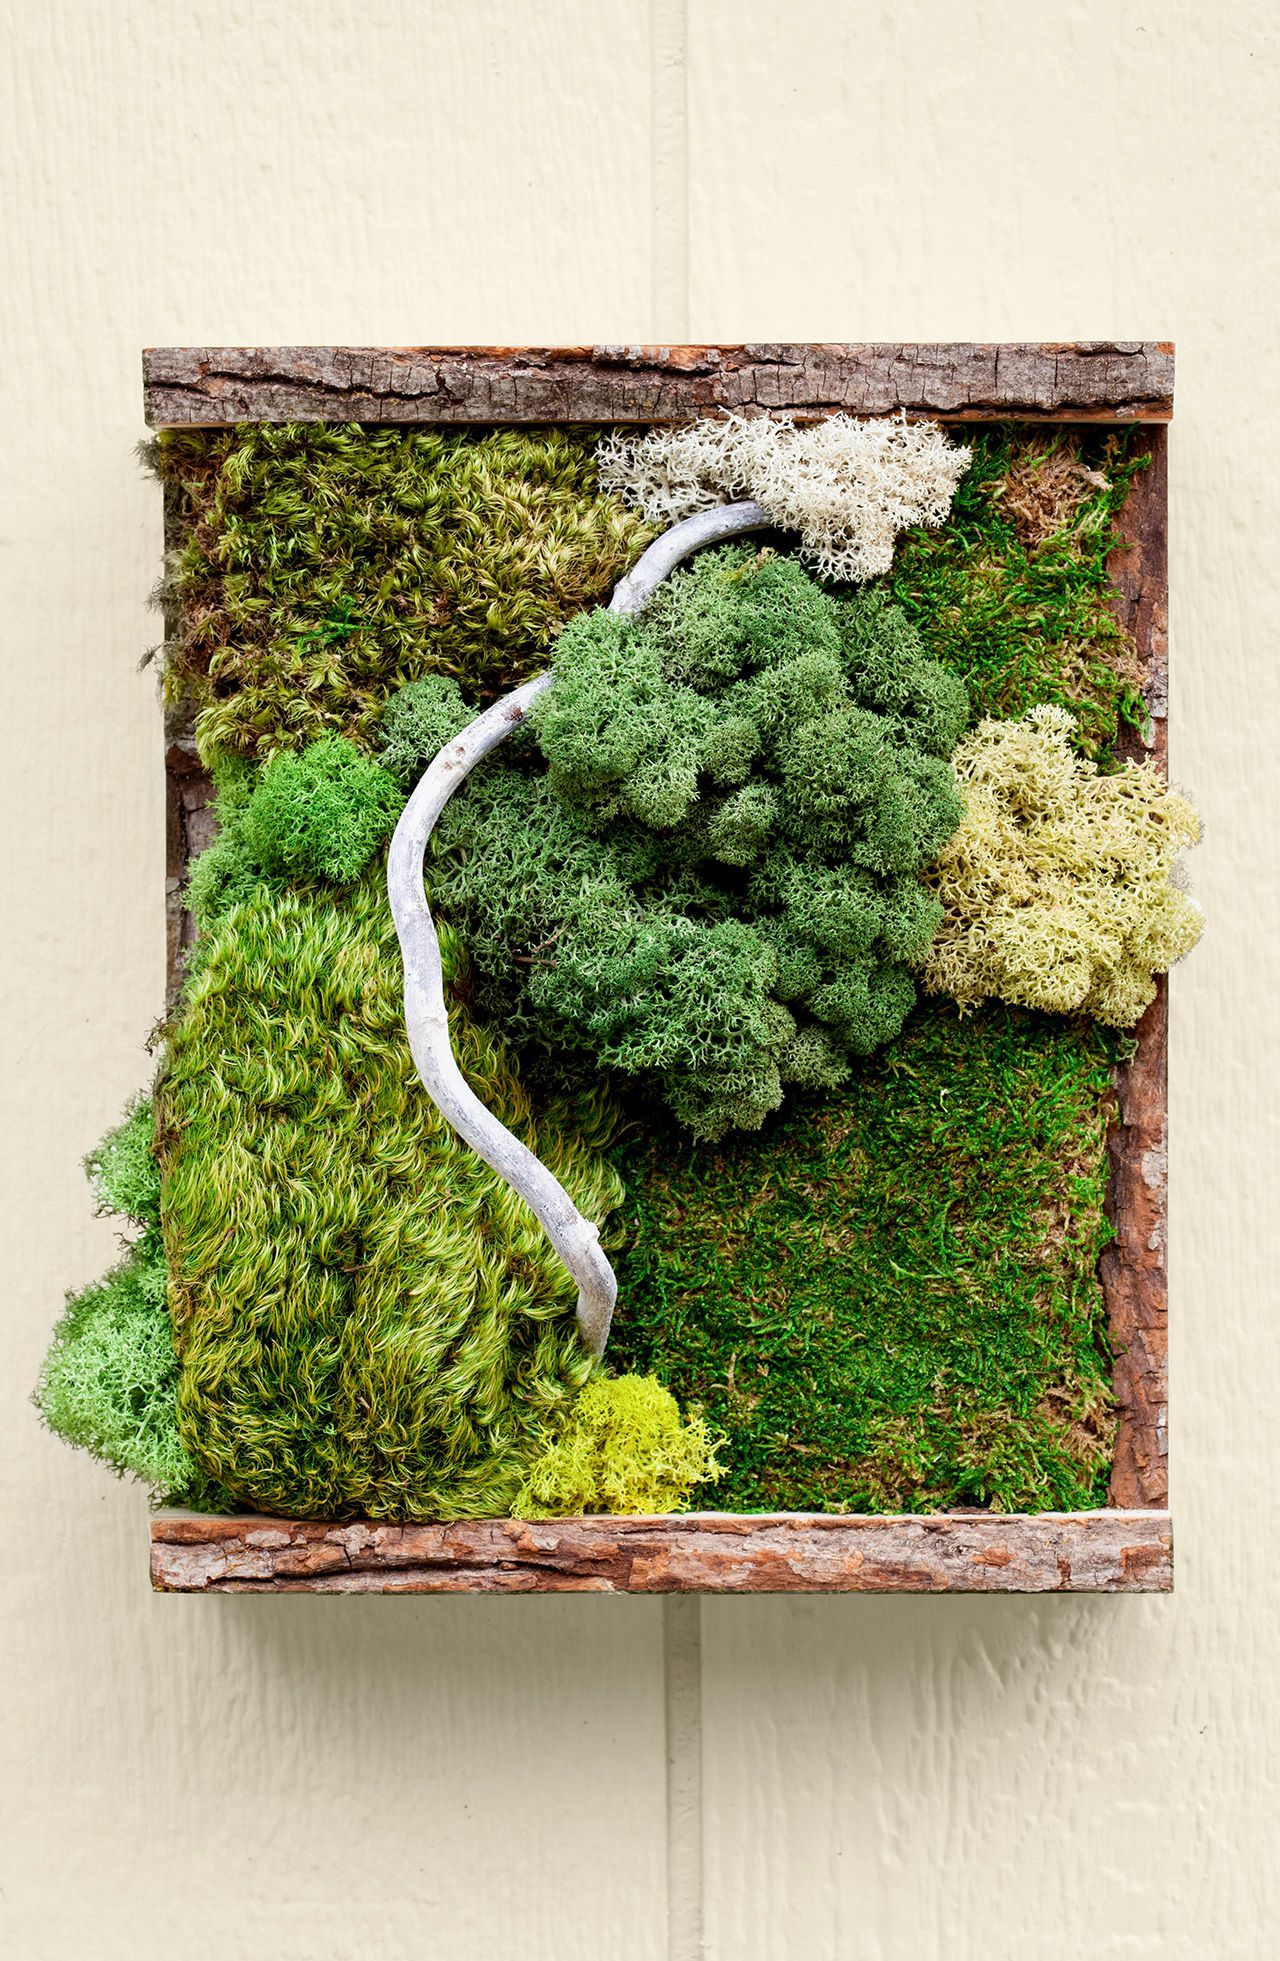 This Diy Moss Wall Art Will Liven Up Your Interiors All Year Long Moss Wall Art Moss Wall Garden Wall Art